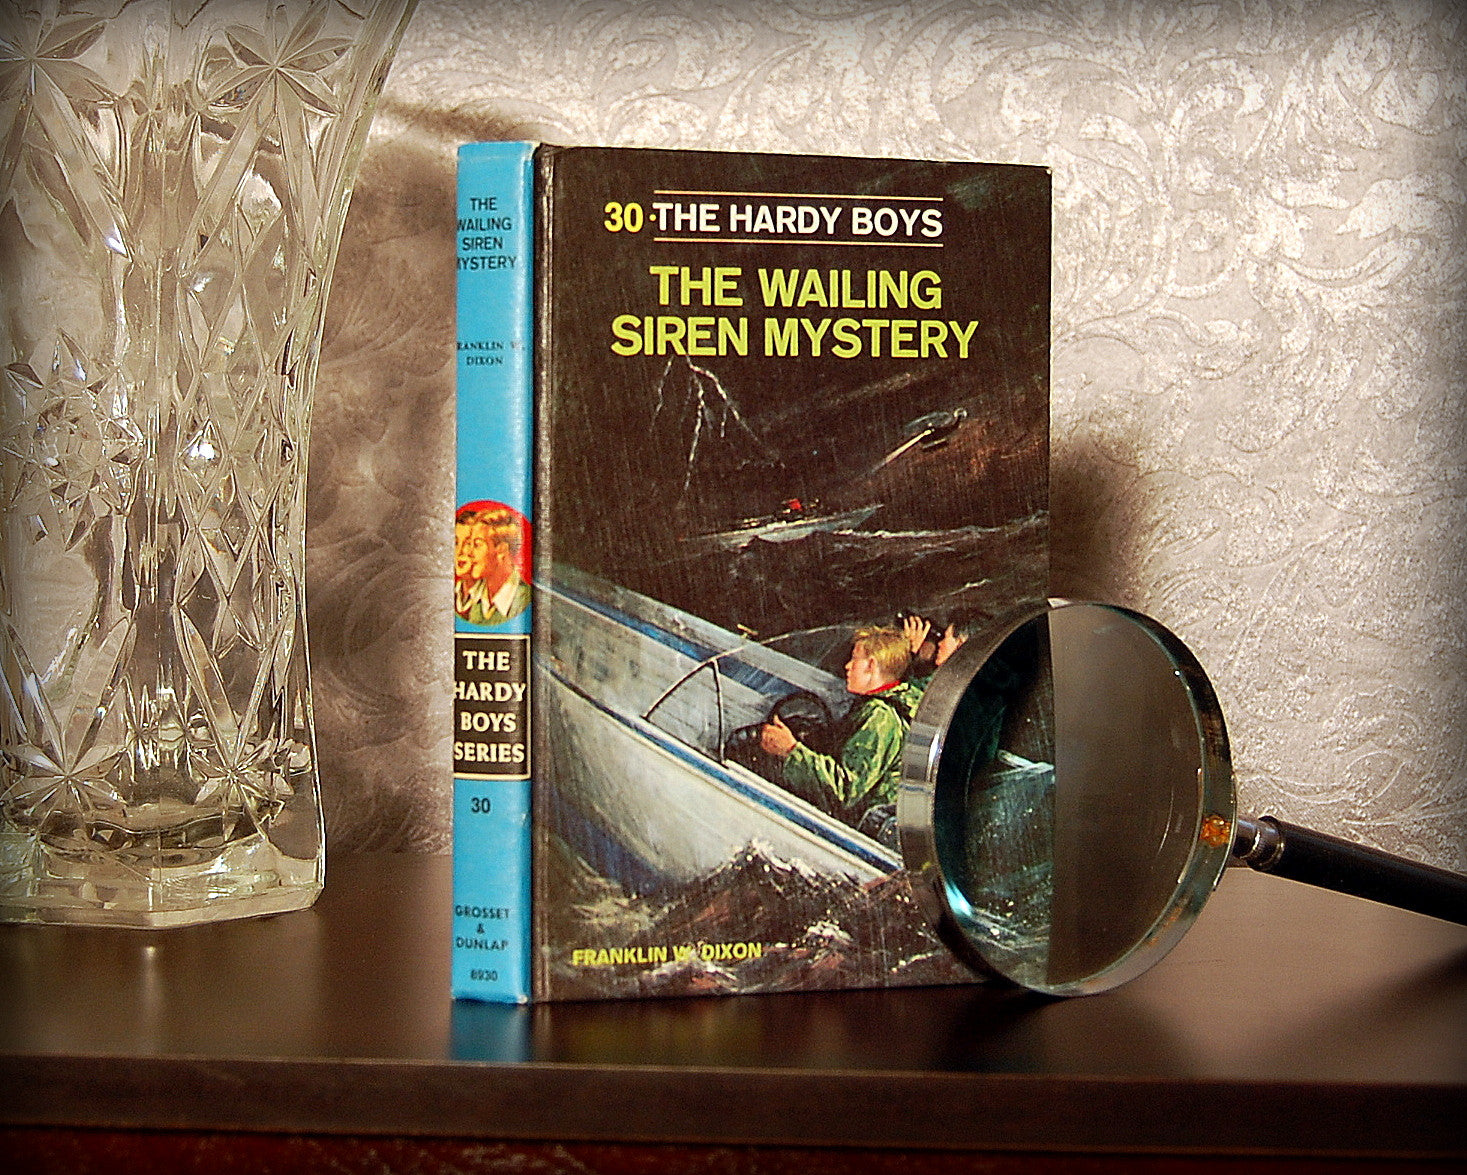 The Hardy Boys: The Wailing Siren Mystery (1978) - Secret Safe Books